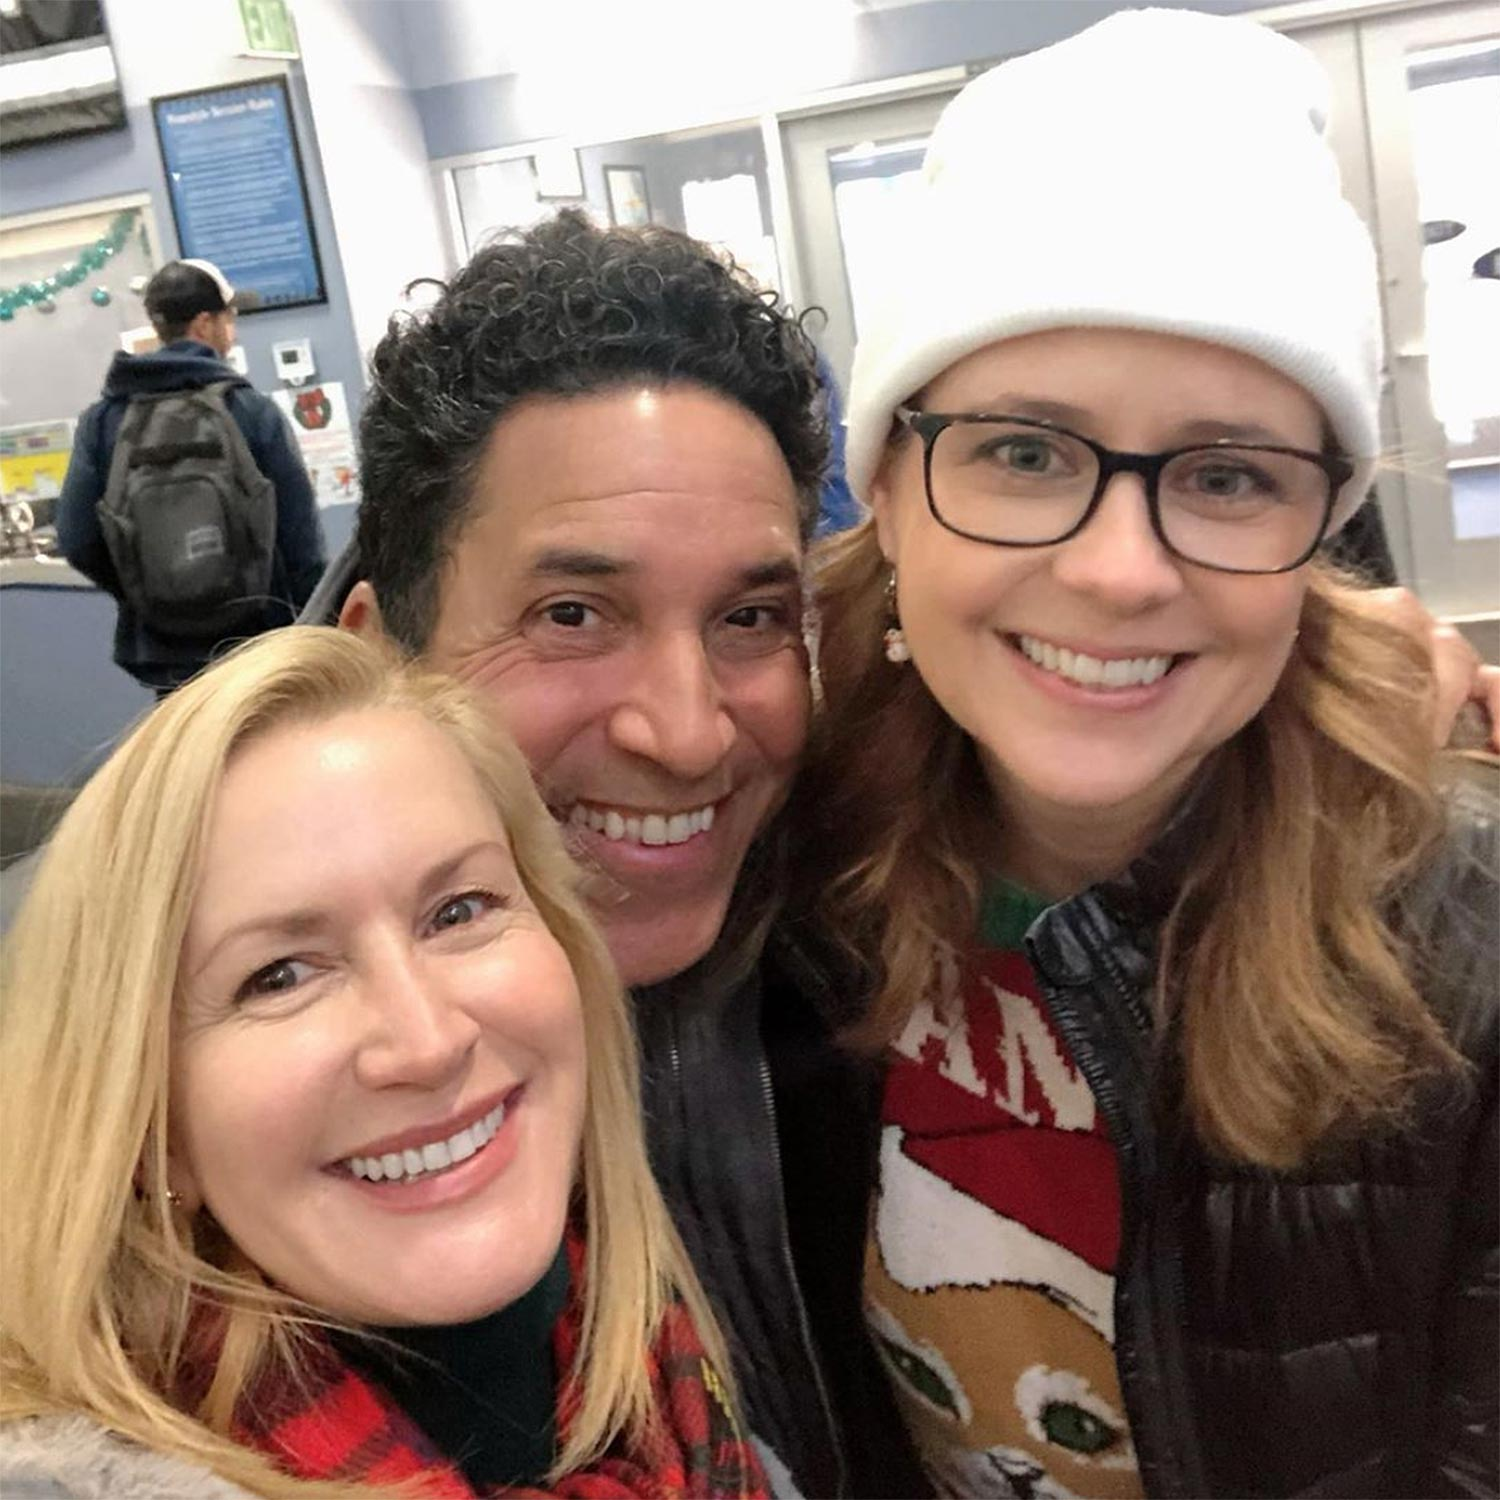 The Office Cast reunions